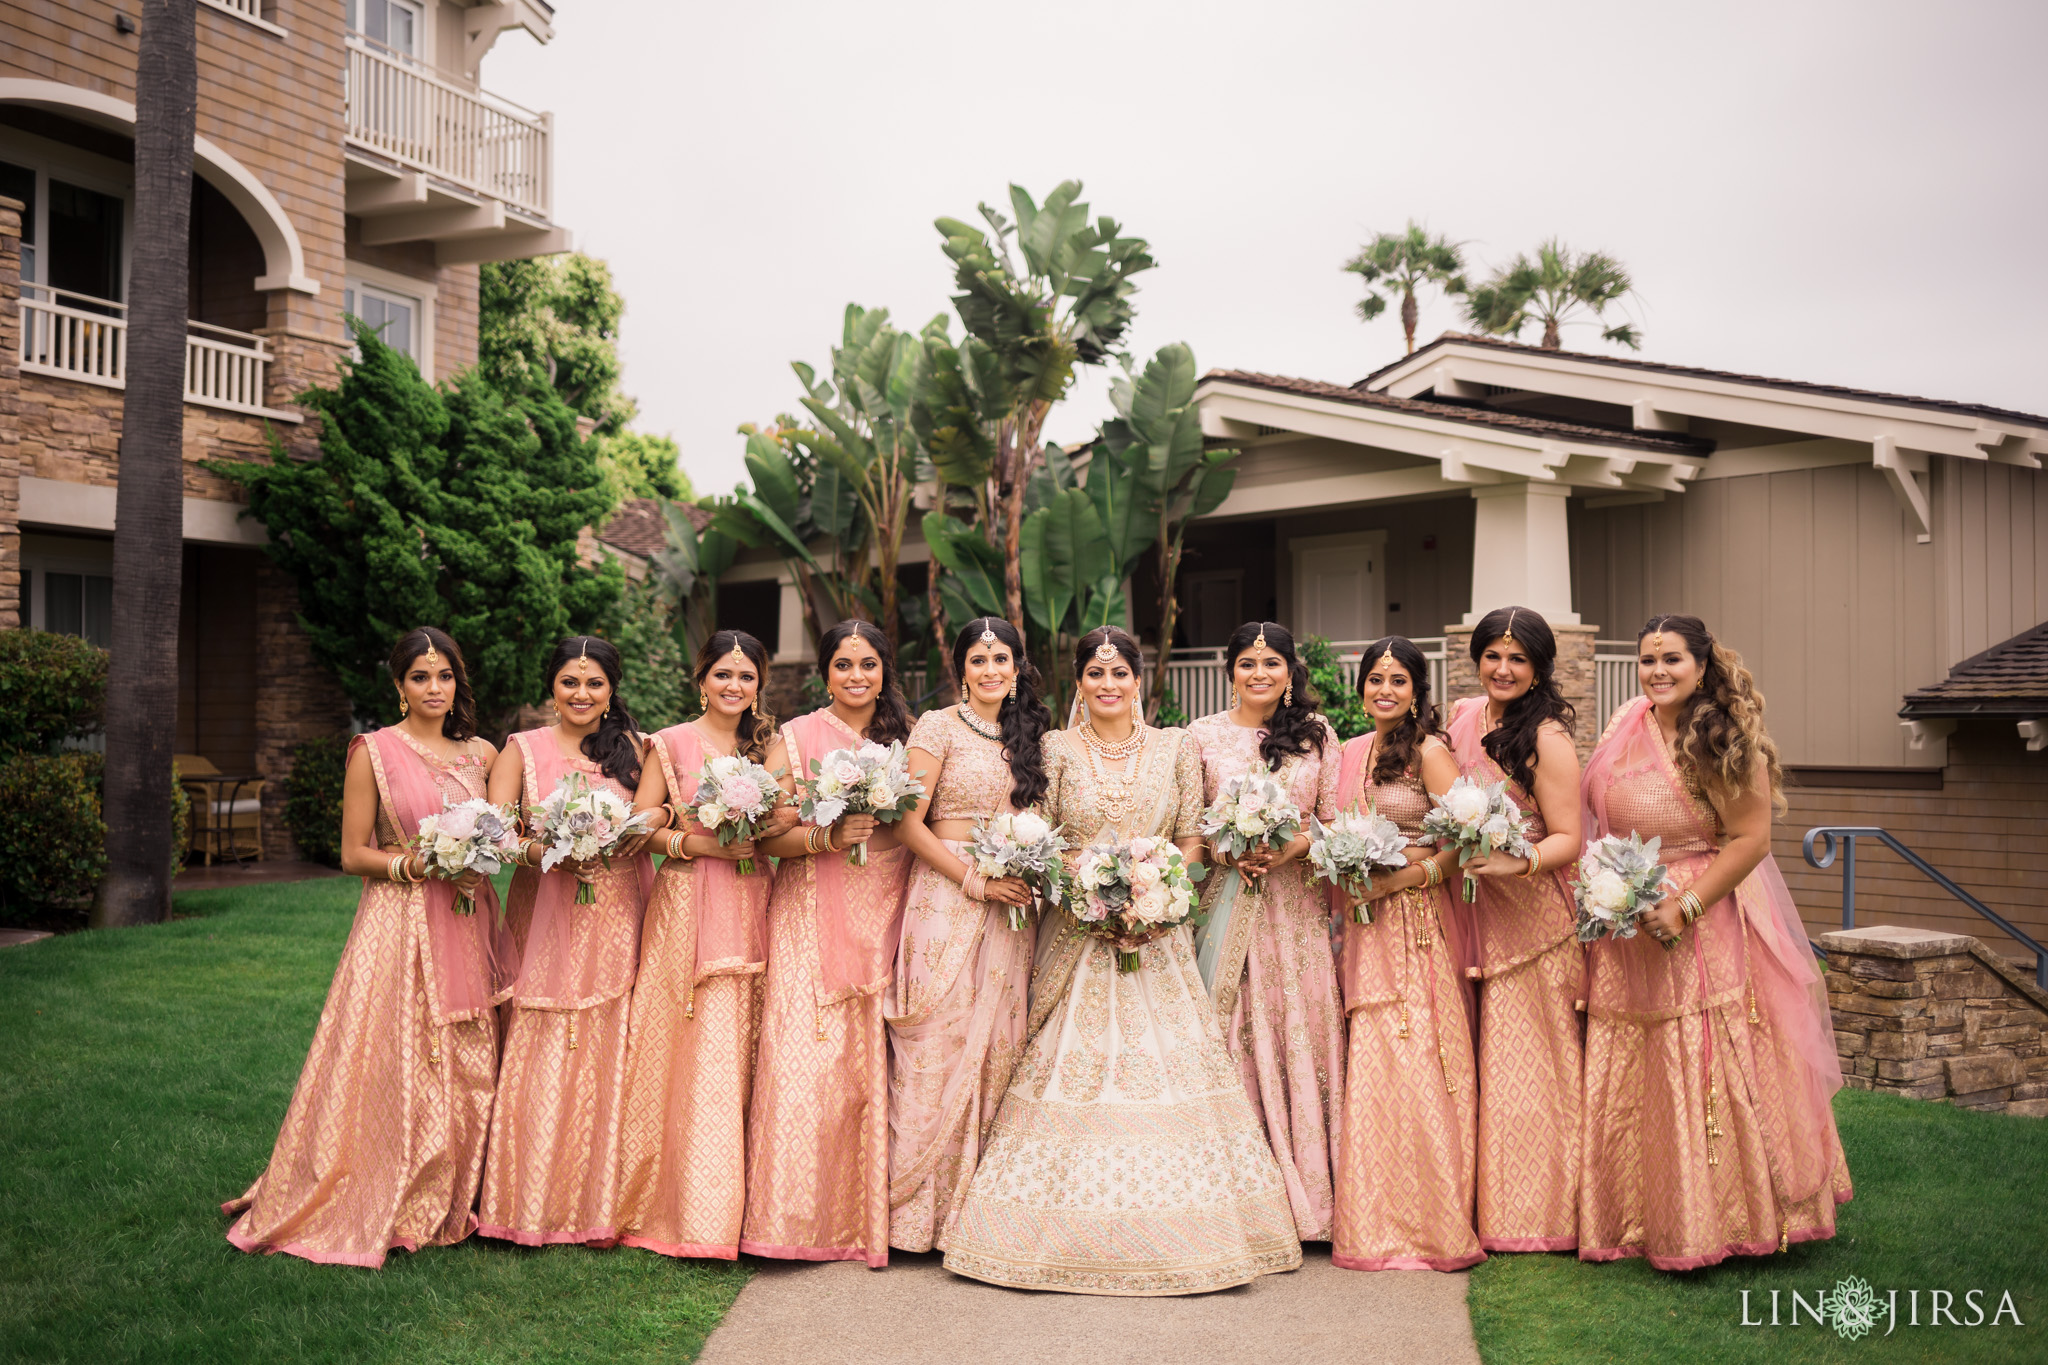 010 montage laguna beach indian bridesmaids wedding photography